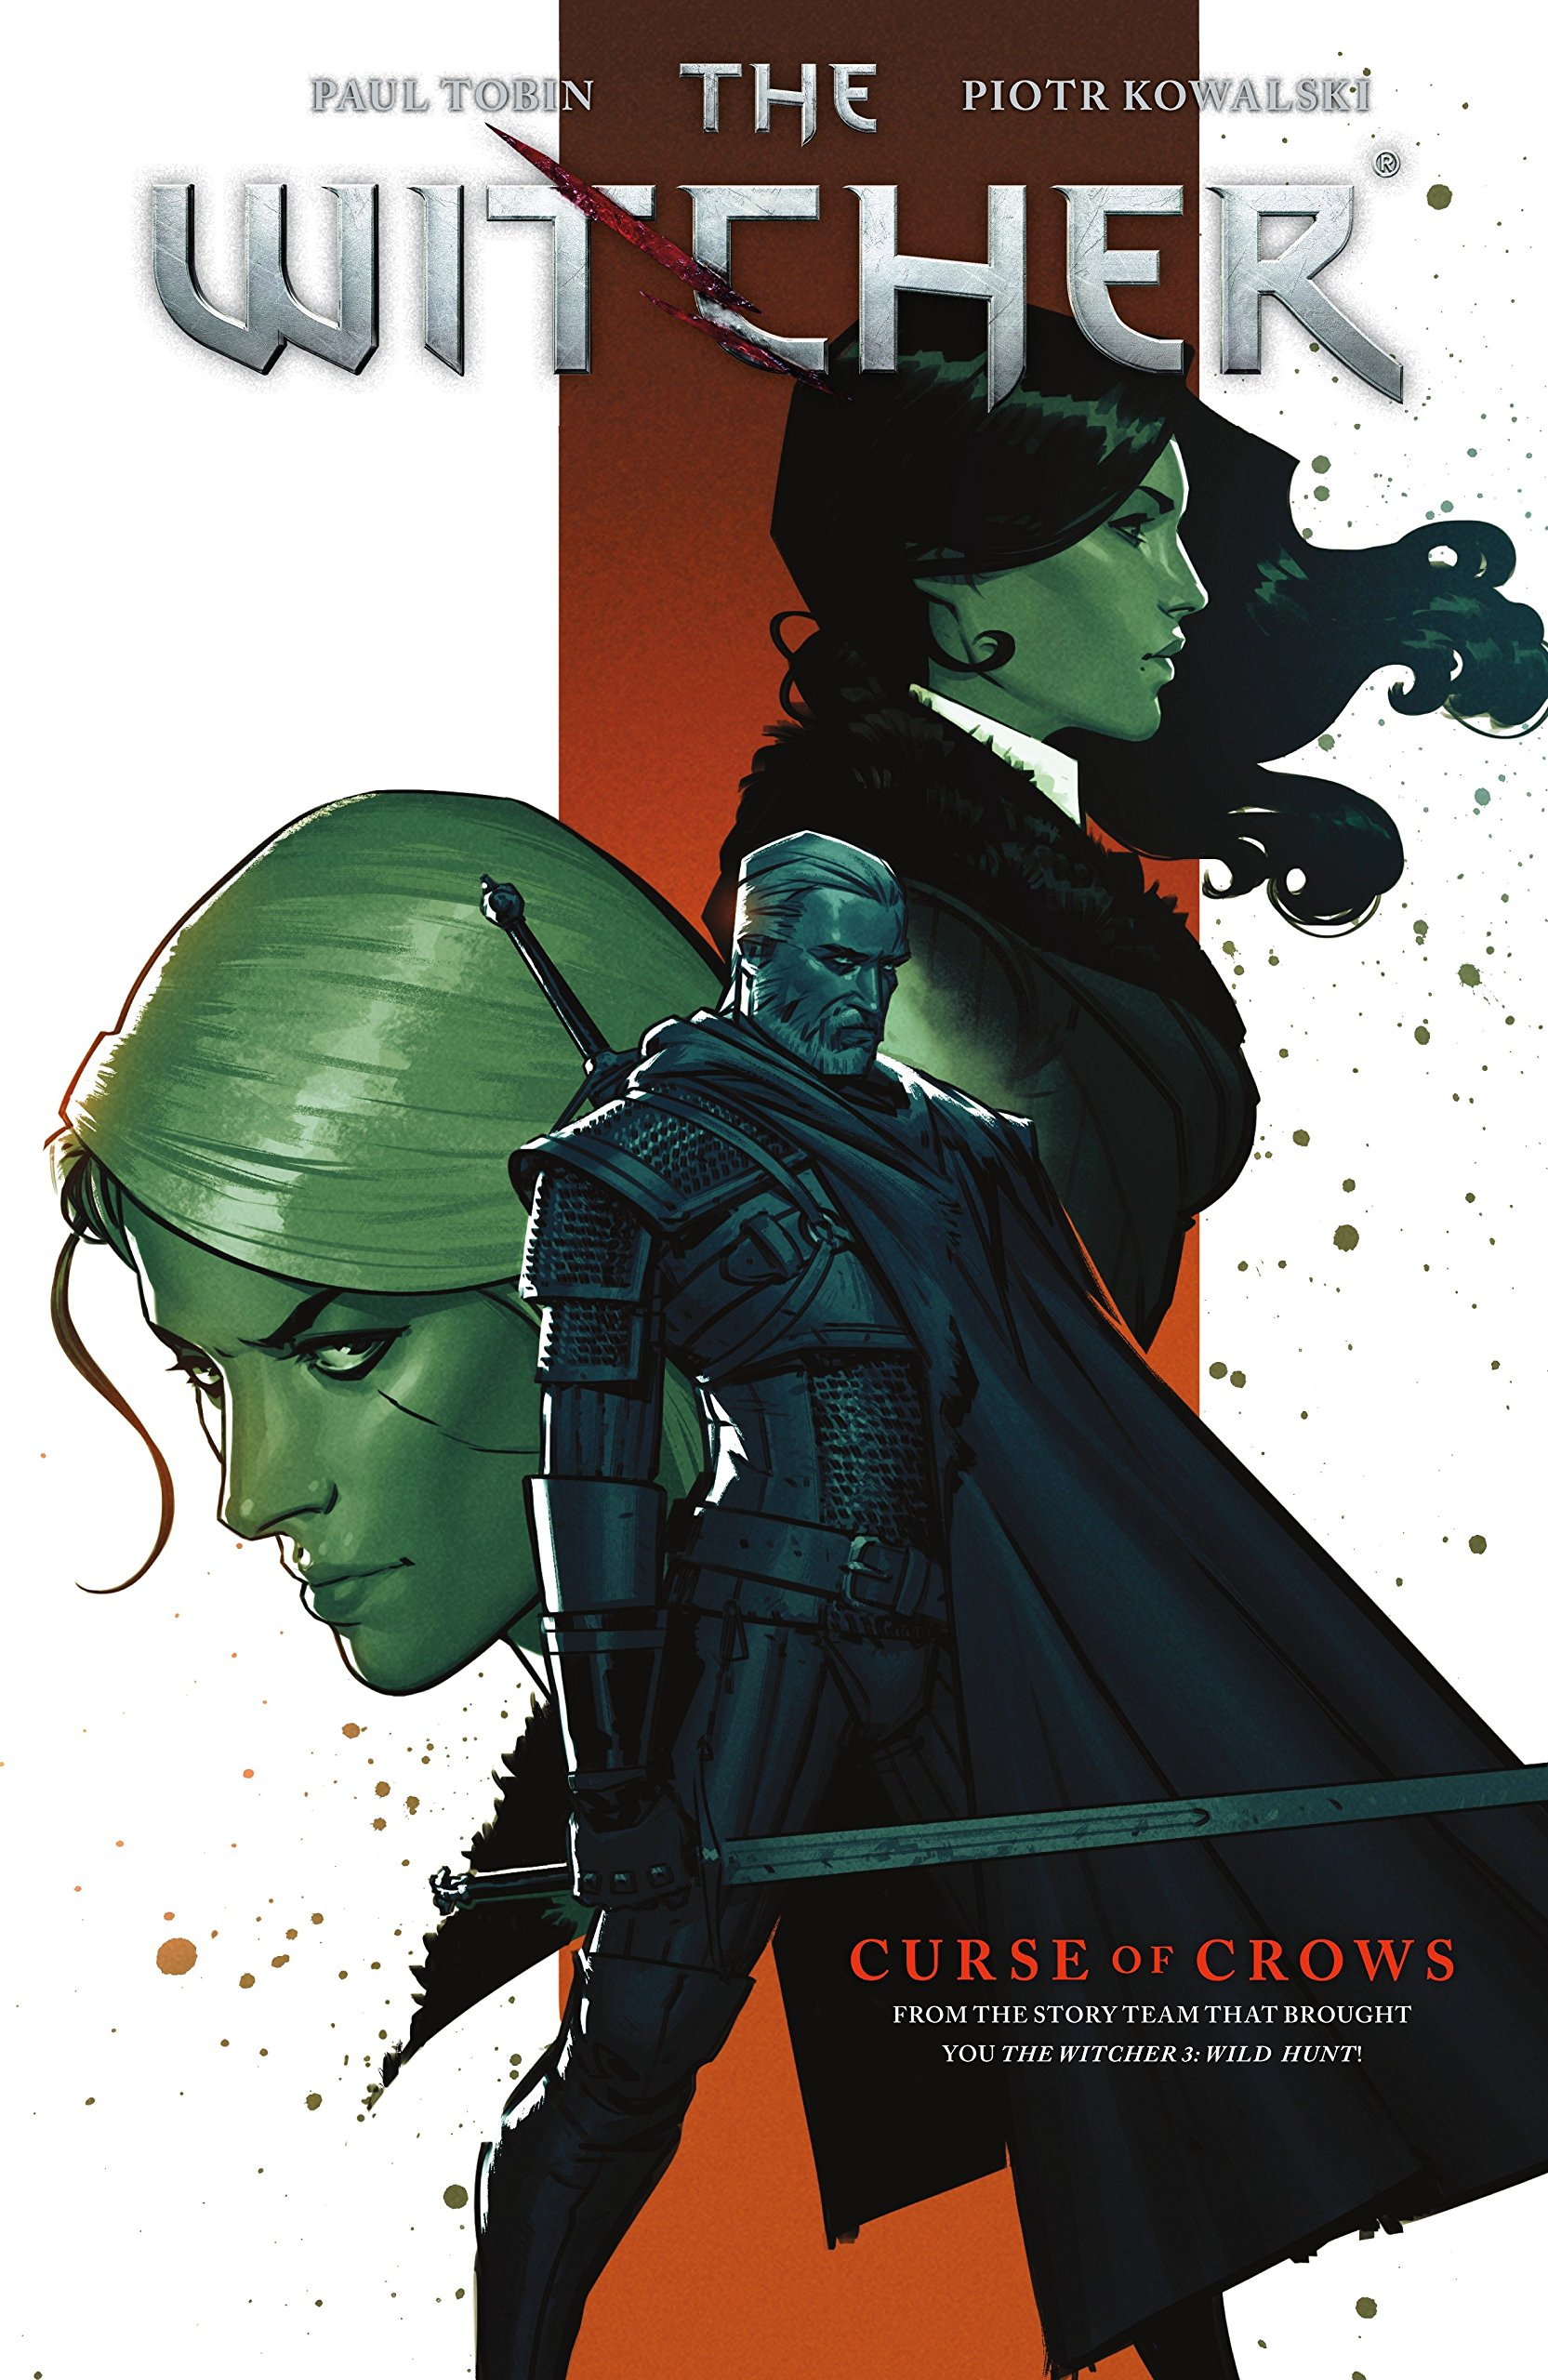 The witcher volume 3 curse of crows paul tobin piotr kowalski the witcher volume 3 curse of crows paul tobin piotr kowalski nick filardi 9781506701615 amazon books solutioingenieria Image collections